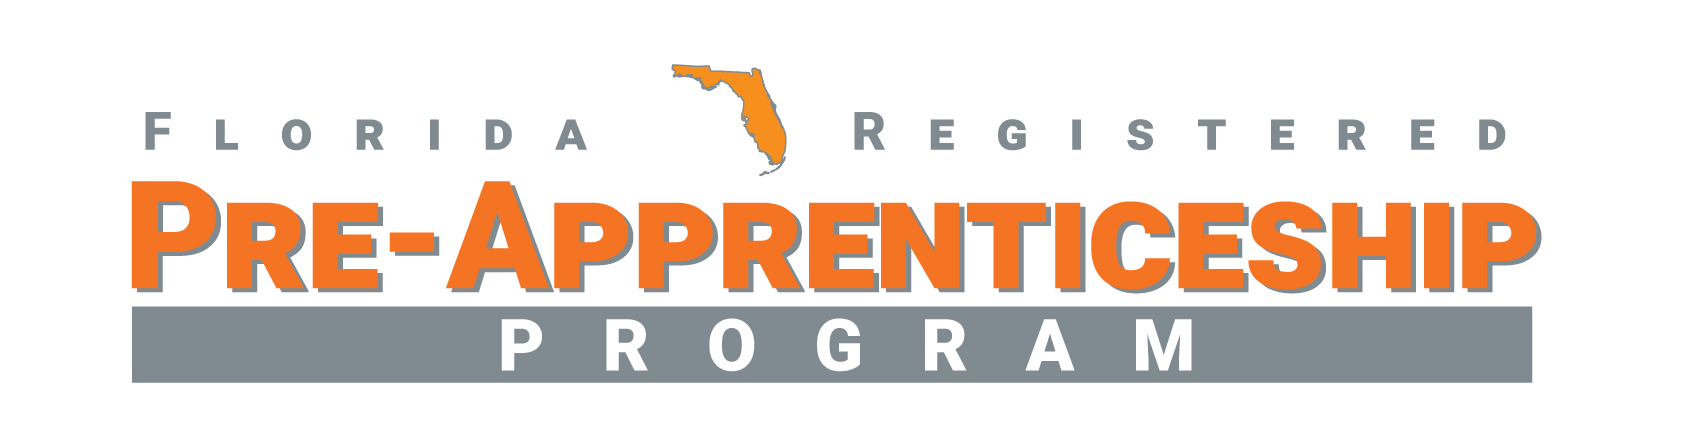 Florida-Version-Pre-Apprenticeship-Program-Logo